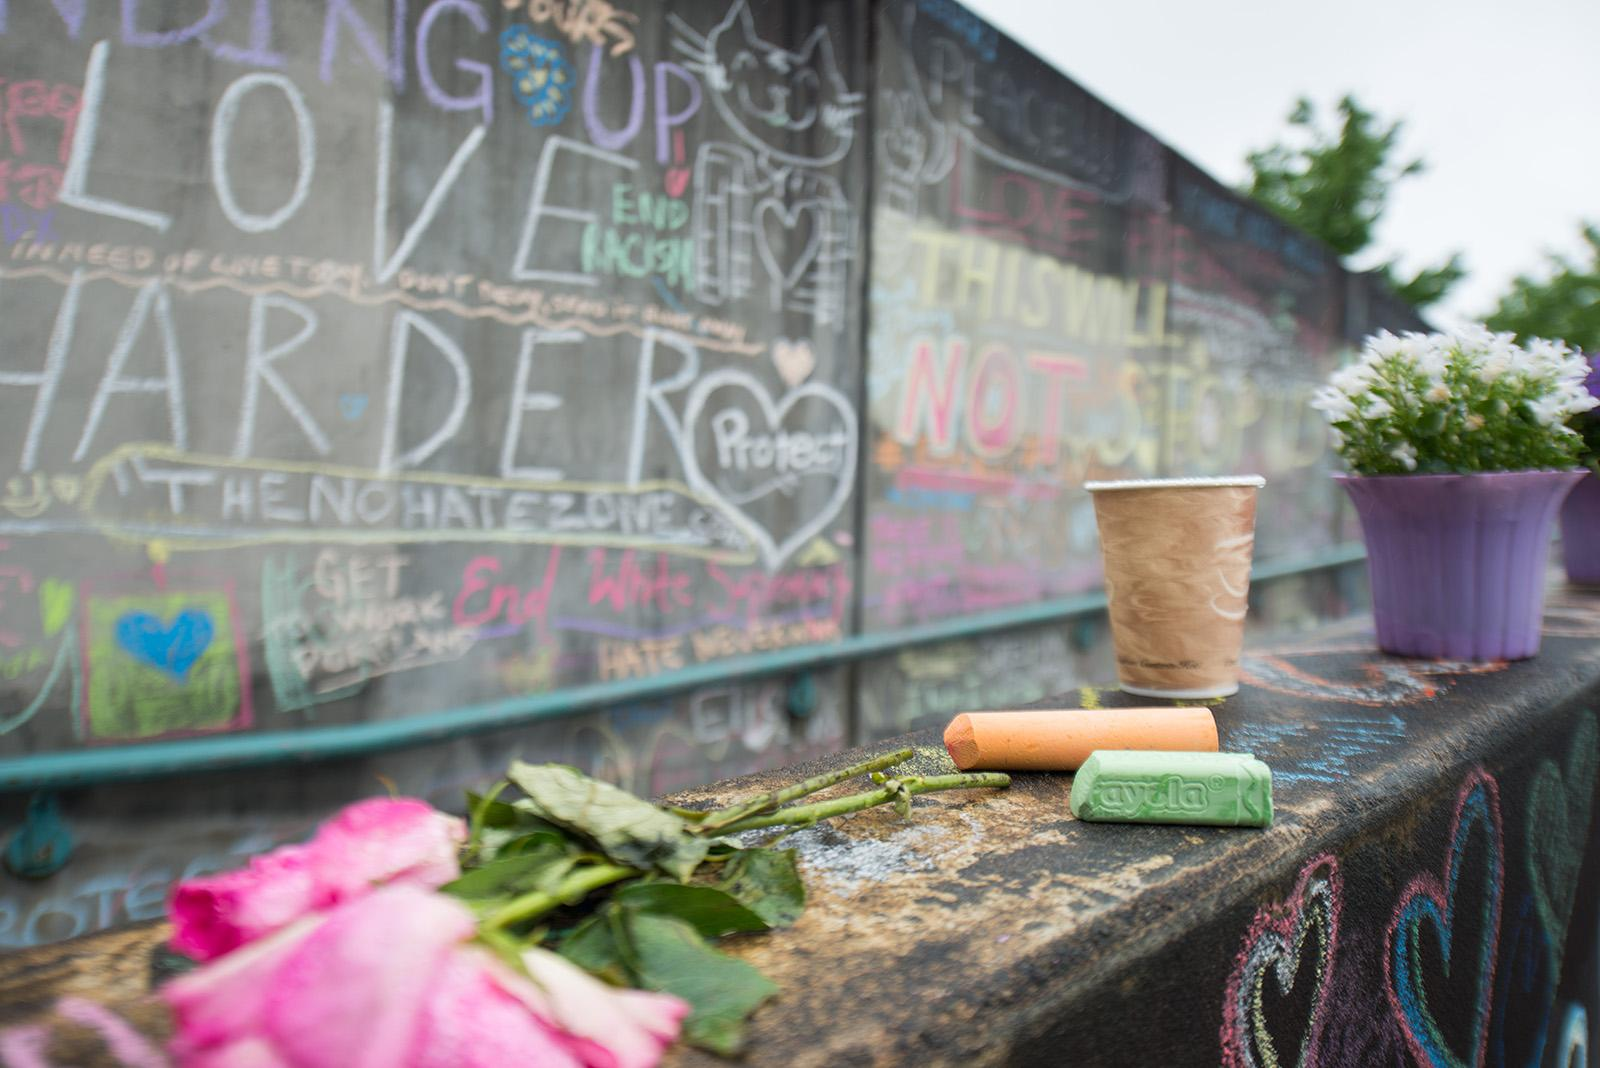 Portland has shown an outpouring of support and love for the heroic actions of the three men who were stabbed, two fatally, after they stood up for two women who were being harrassed on a MAX train near Hollywood Transit Center. (KATU photo taken 5-30-2017)